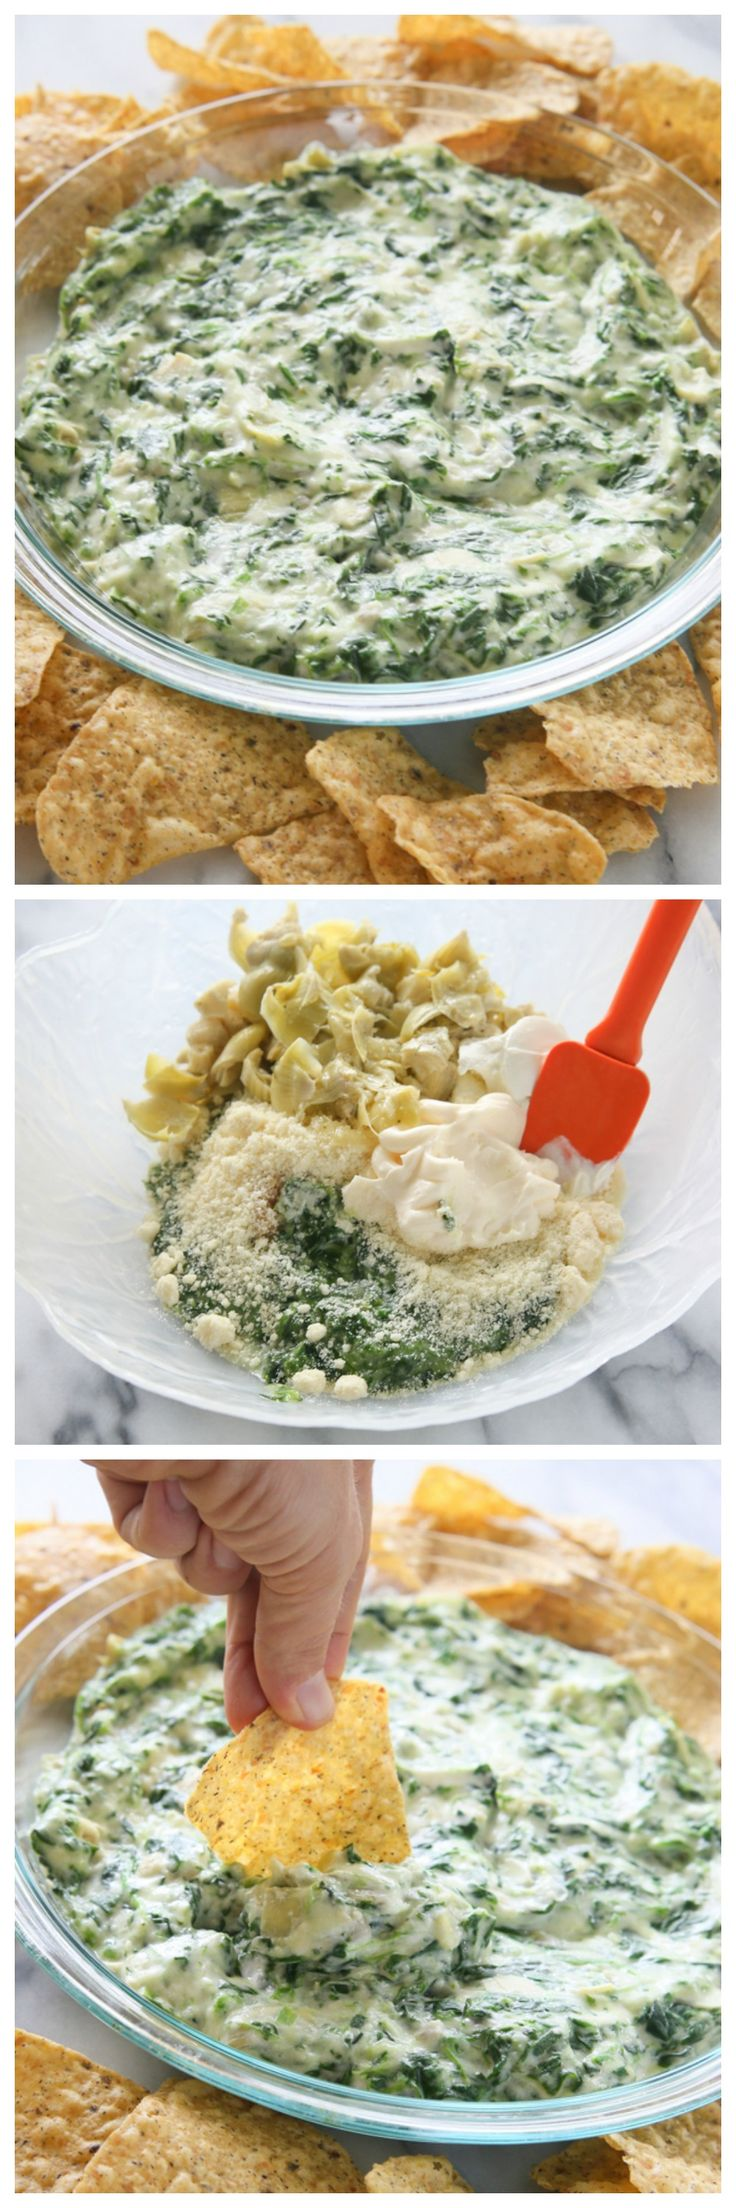 Hot Artichoke and Spinach Dip - tastes just like the restaurant style dip. www.the-girl-who-ate-everything.com